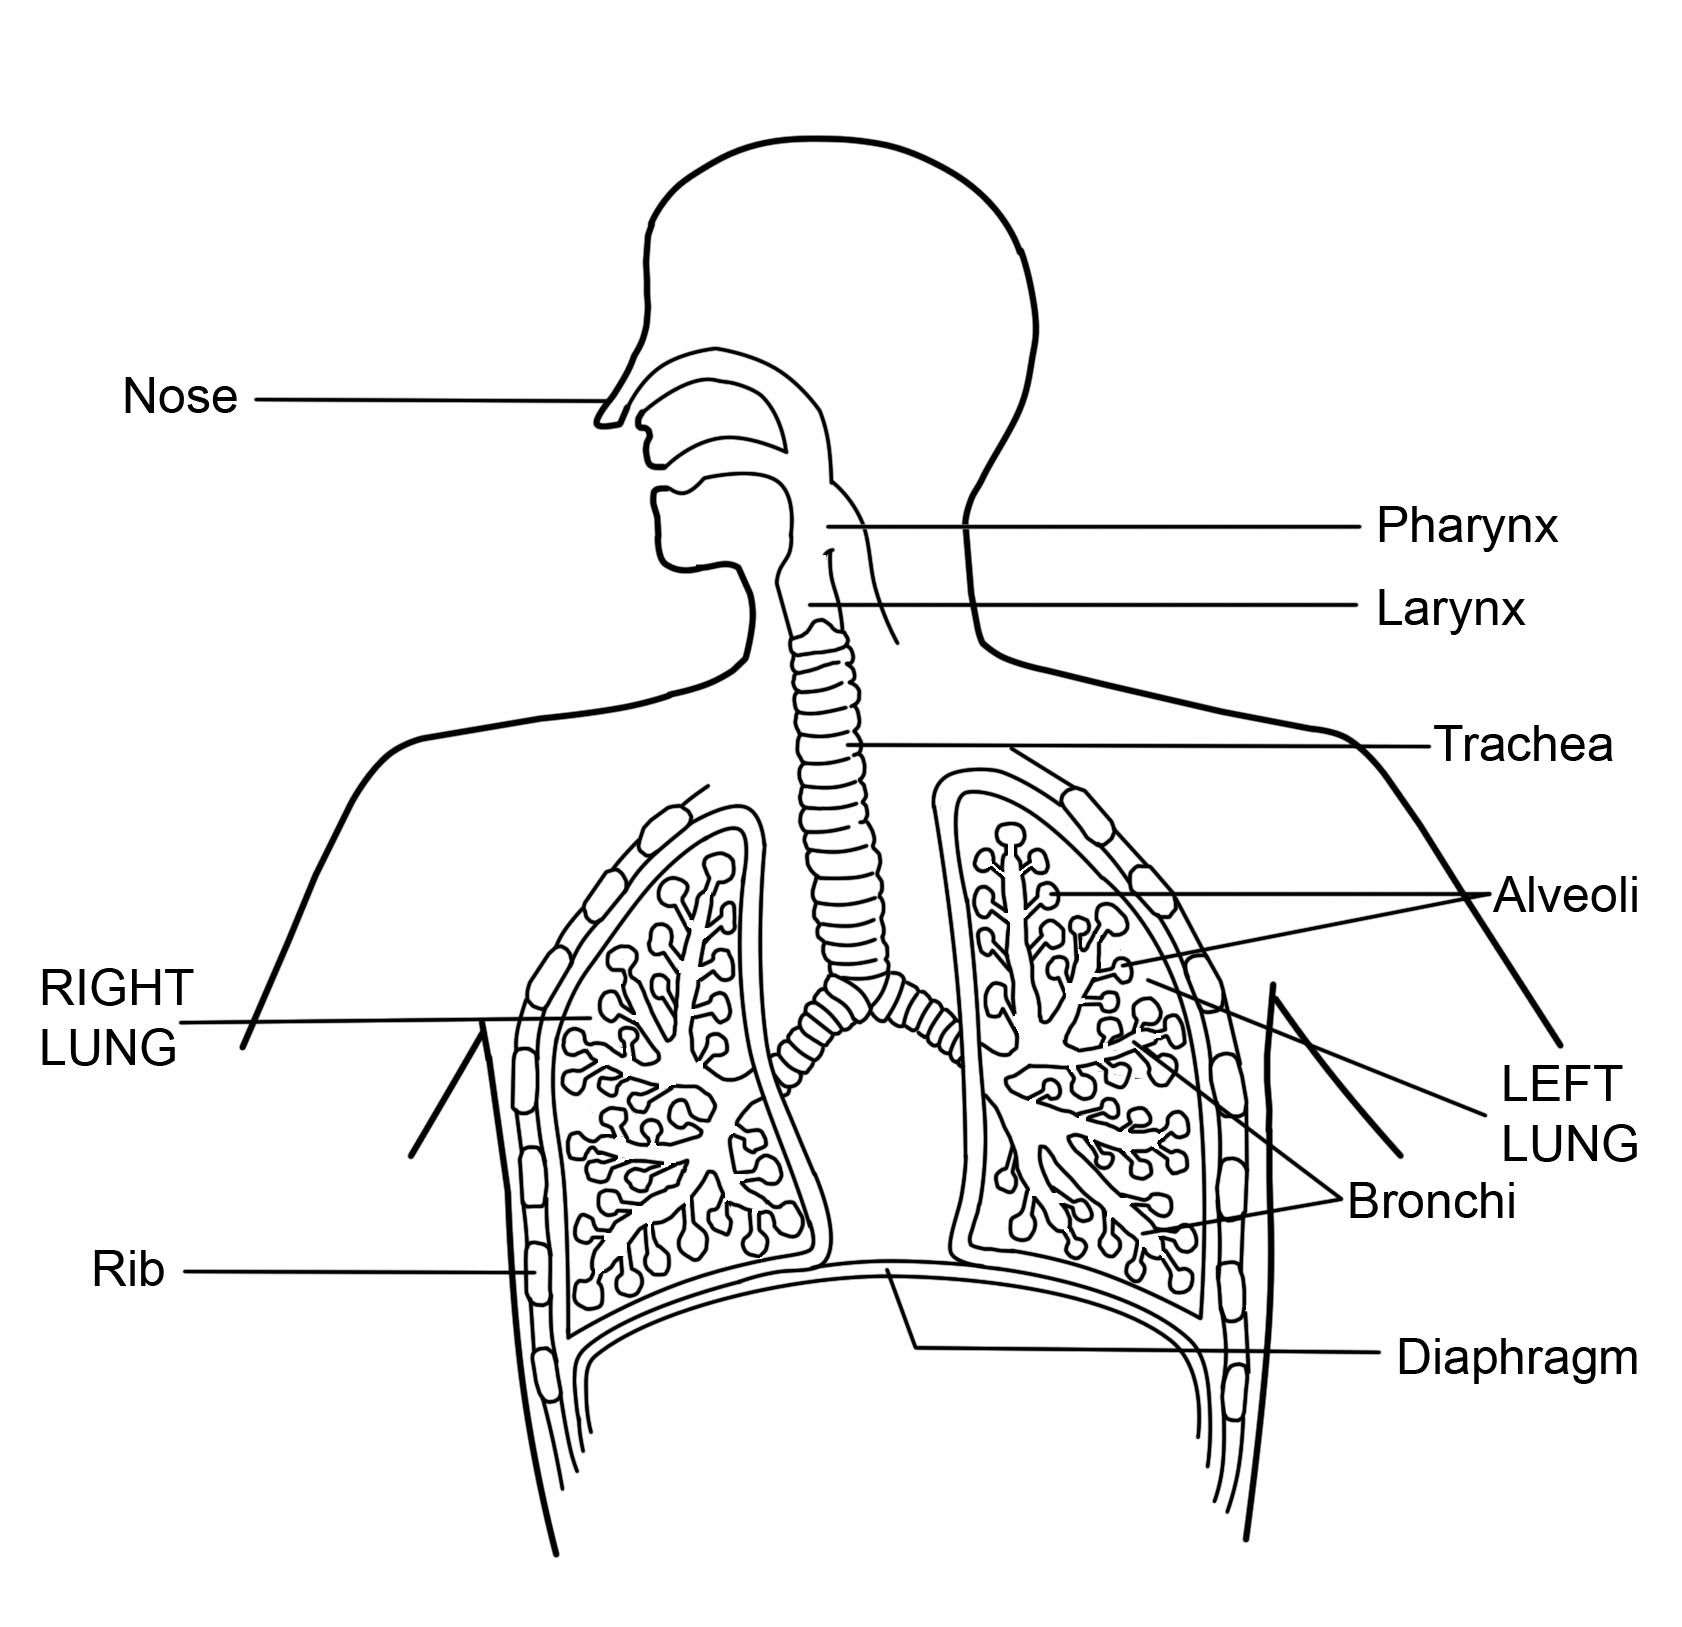 hight resolution of respiratory diagram with labels